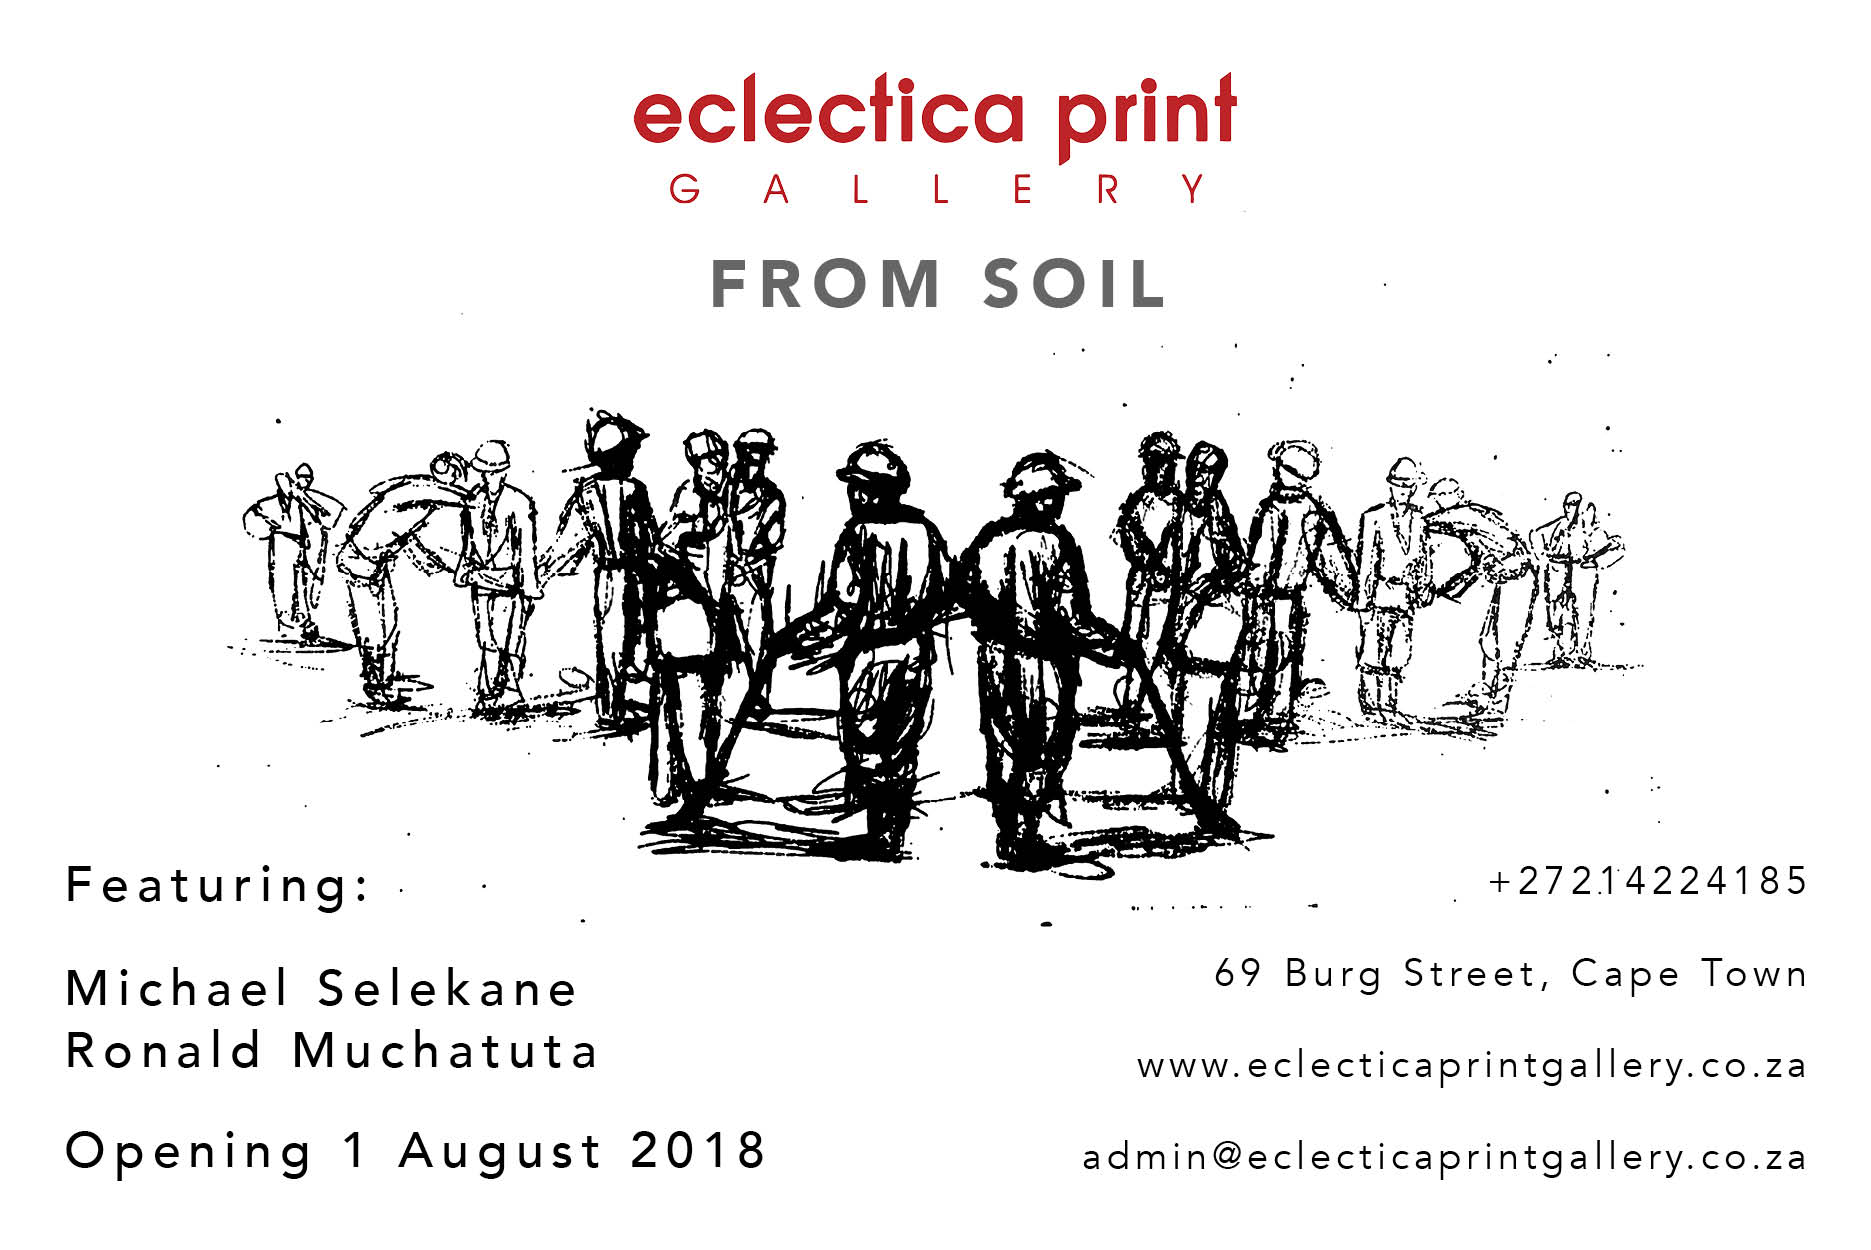 From Soil August 2018